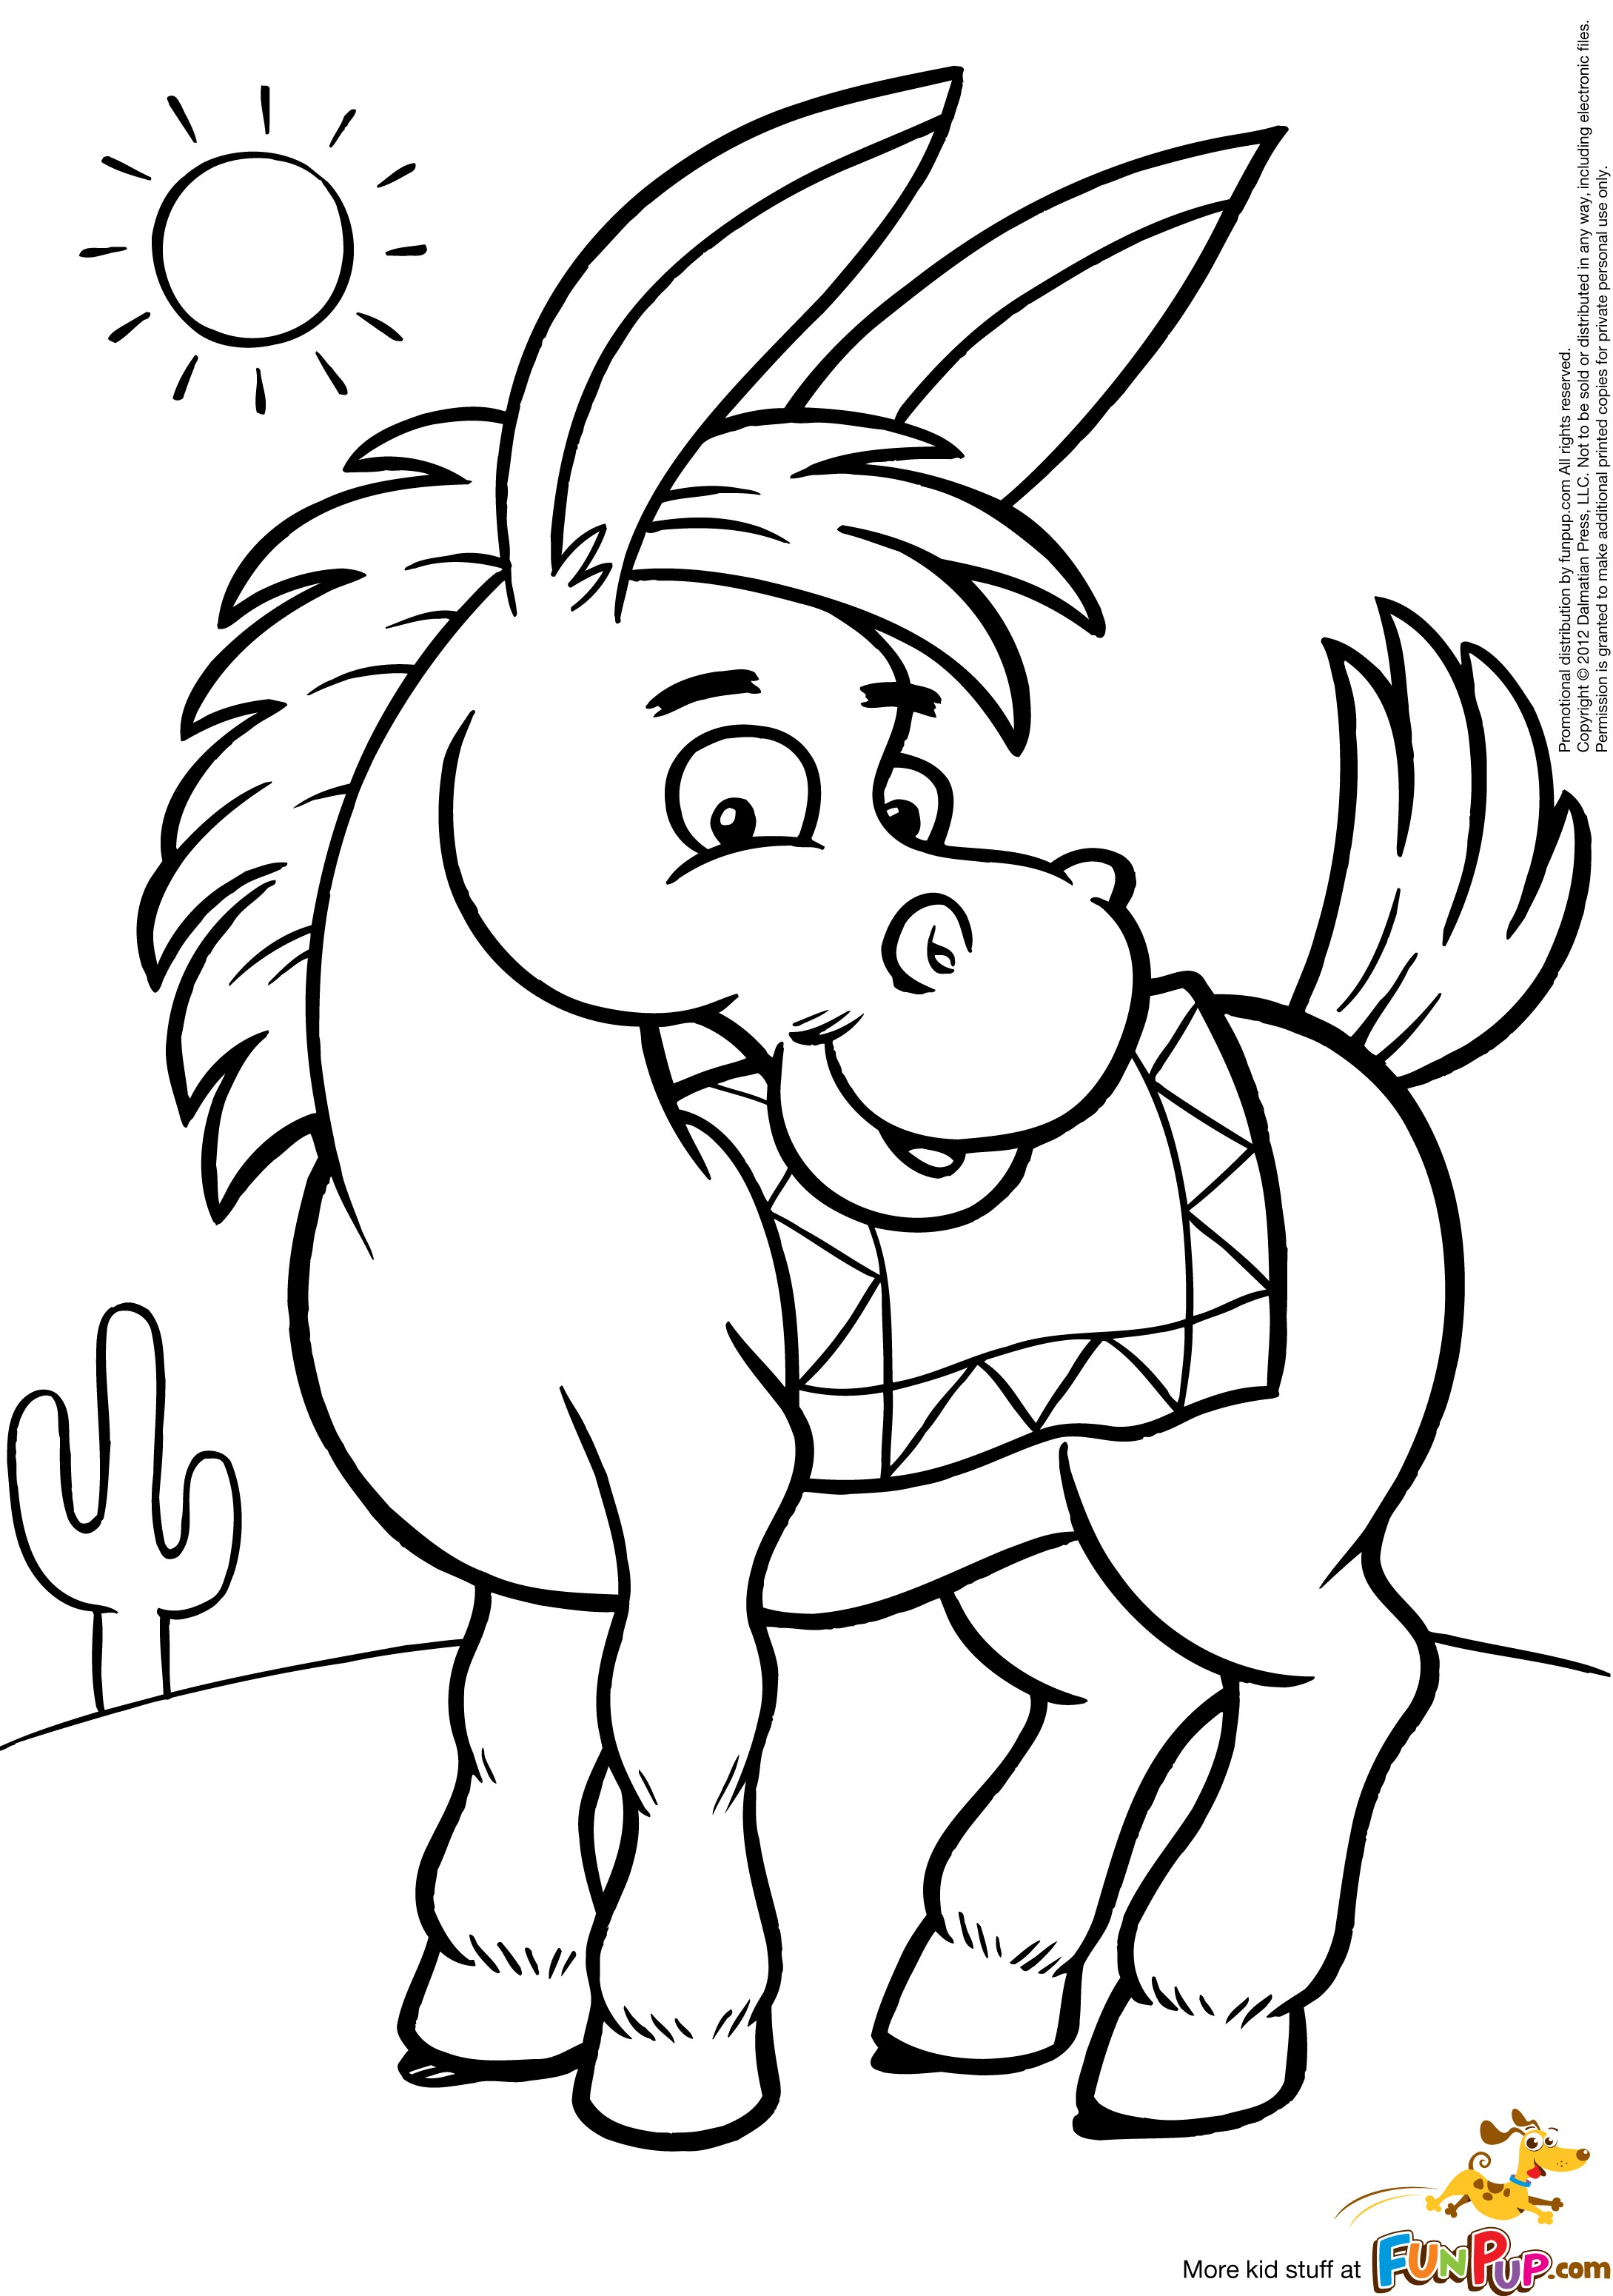 colouring pages to print free caillou coloring pages best coloring pages for kids to free print pages colouring